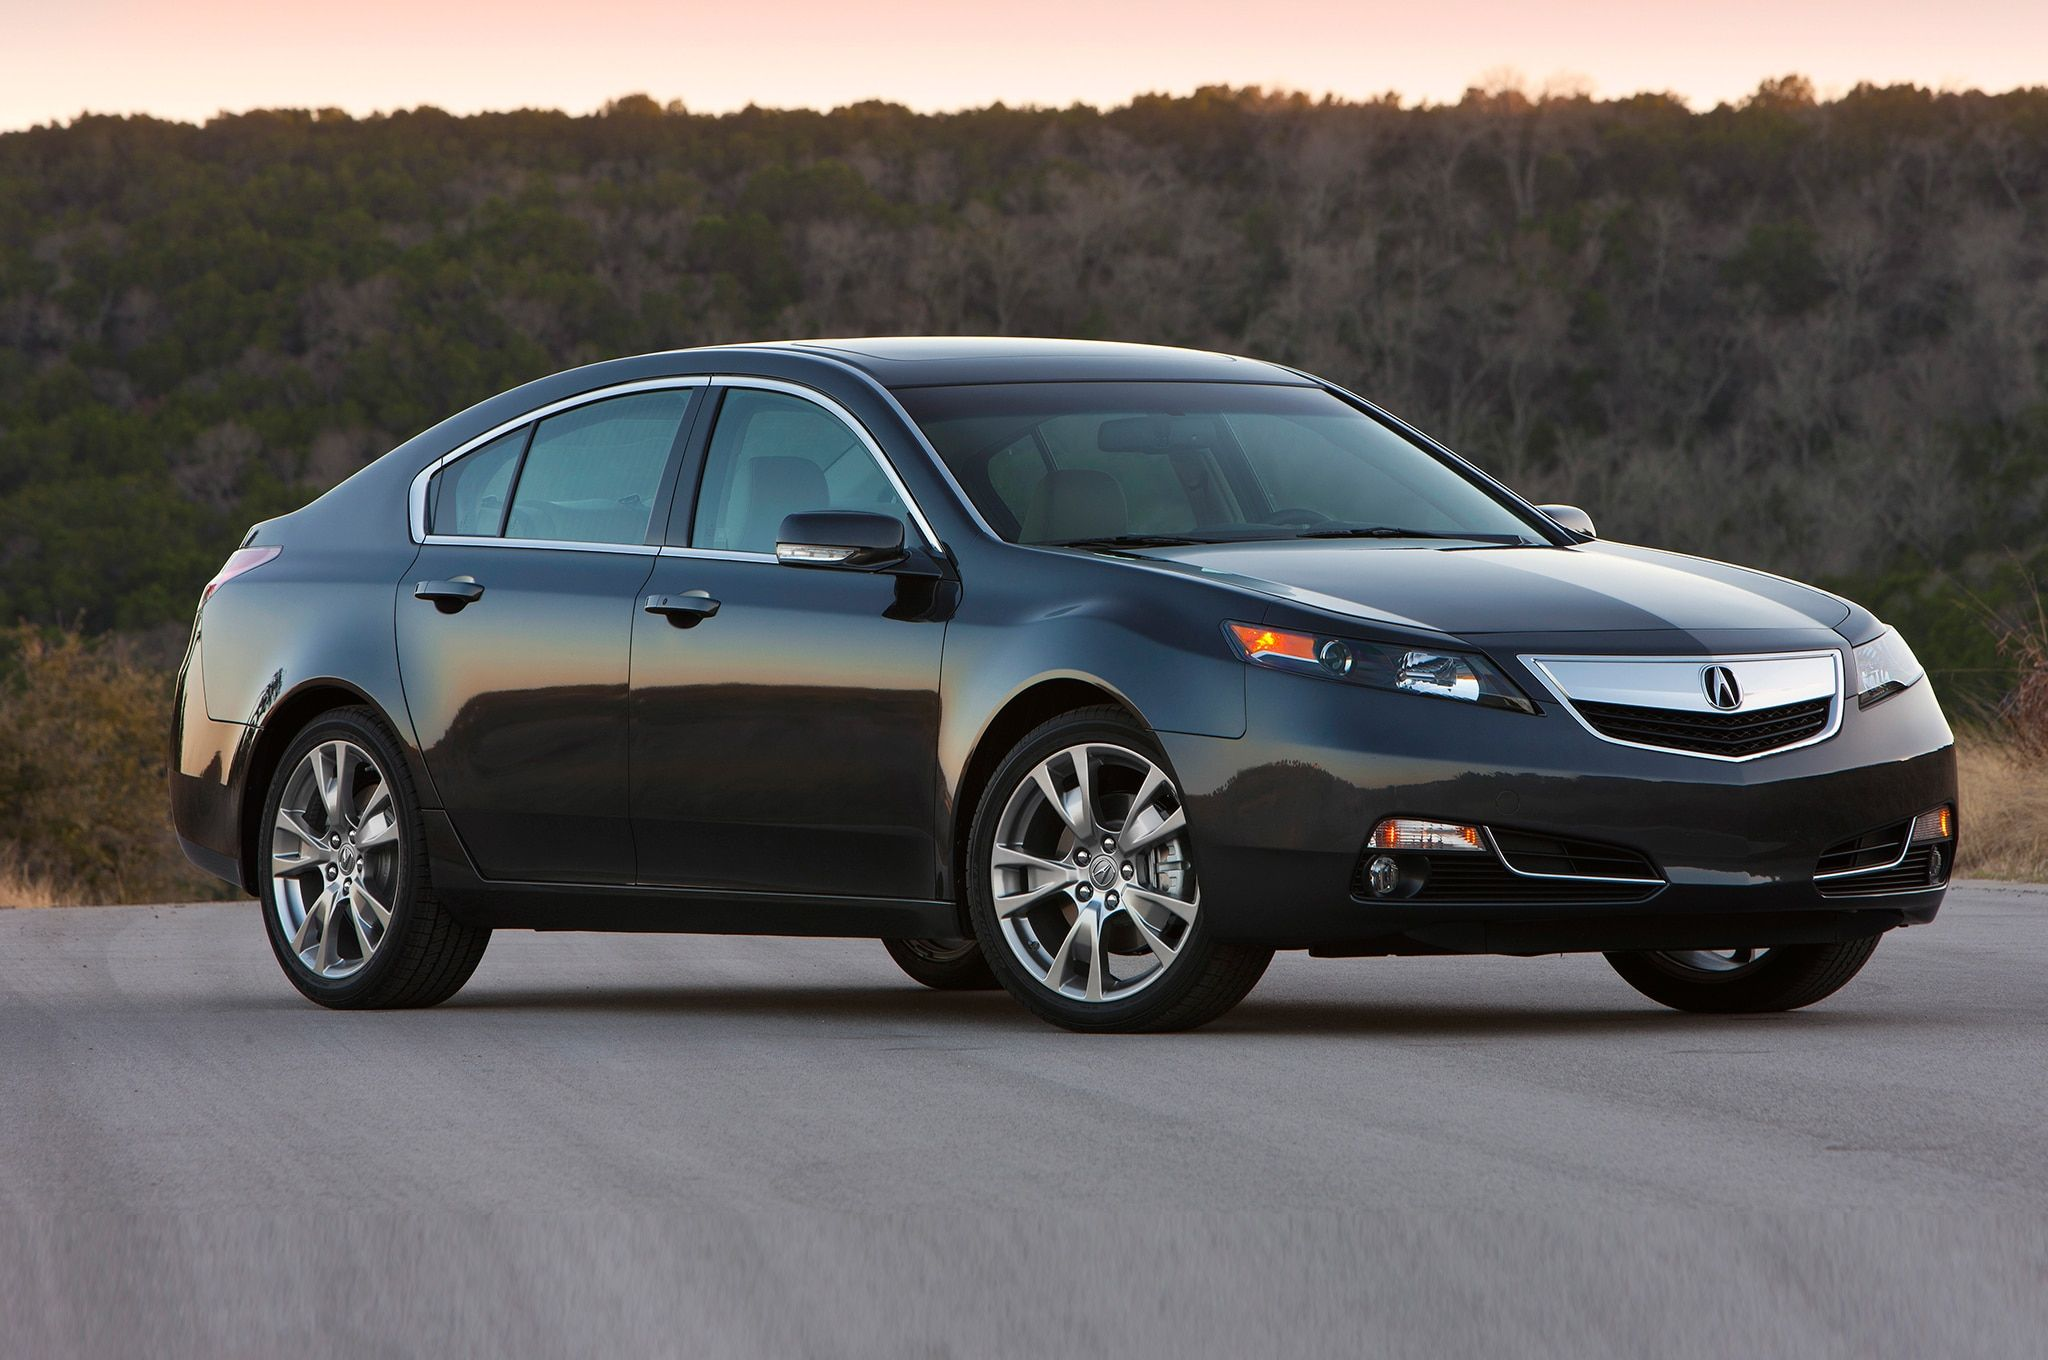 2014 Acura TL Reviews and Rating Motor Trend Acura tl